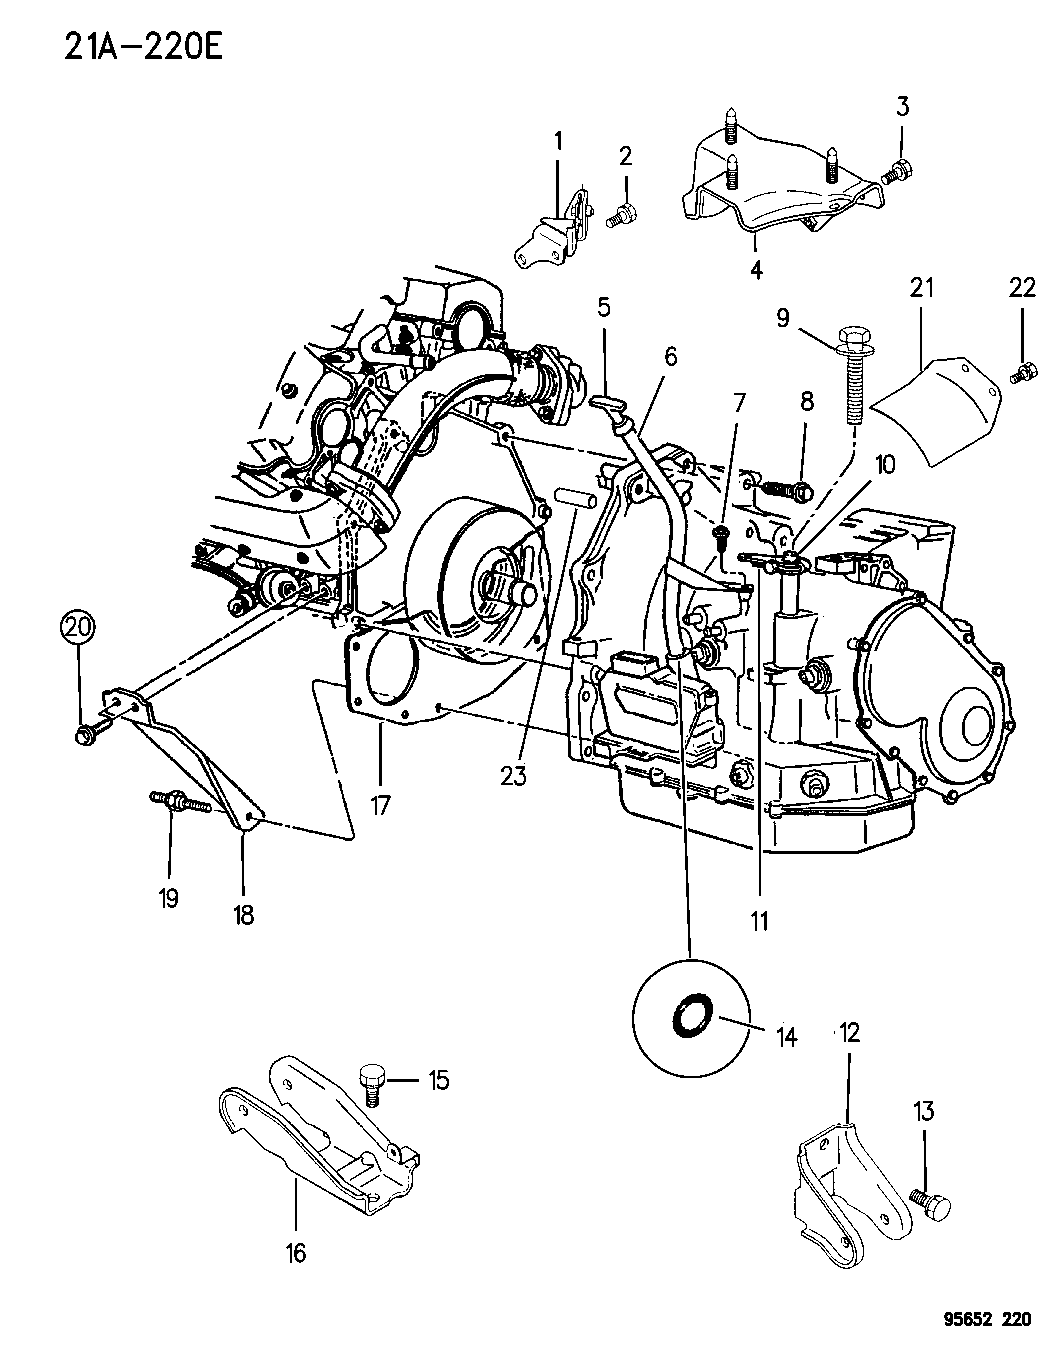 1996 Dodge Avenger Transaxle Mounting Miscellaneous Parts Engine Diagram Thumbnail 1